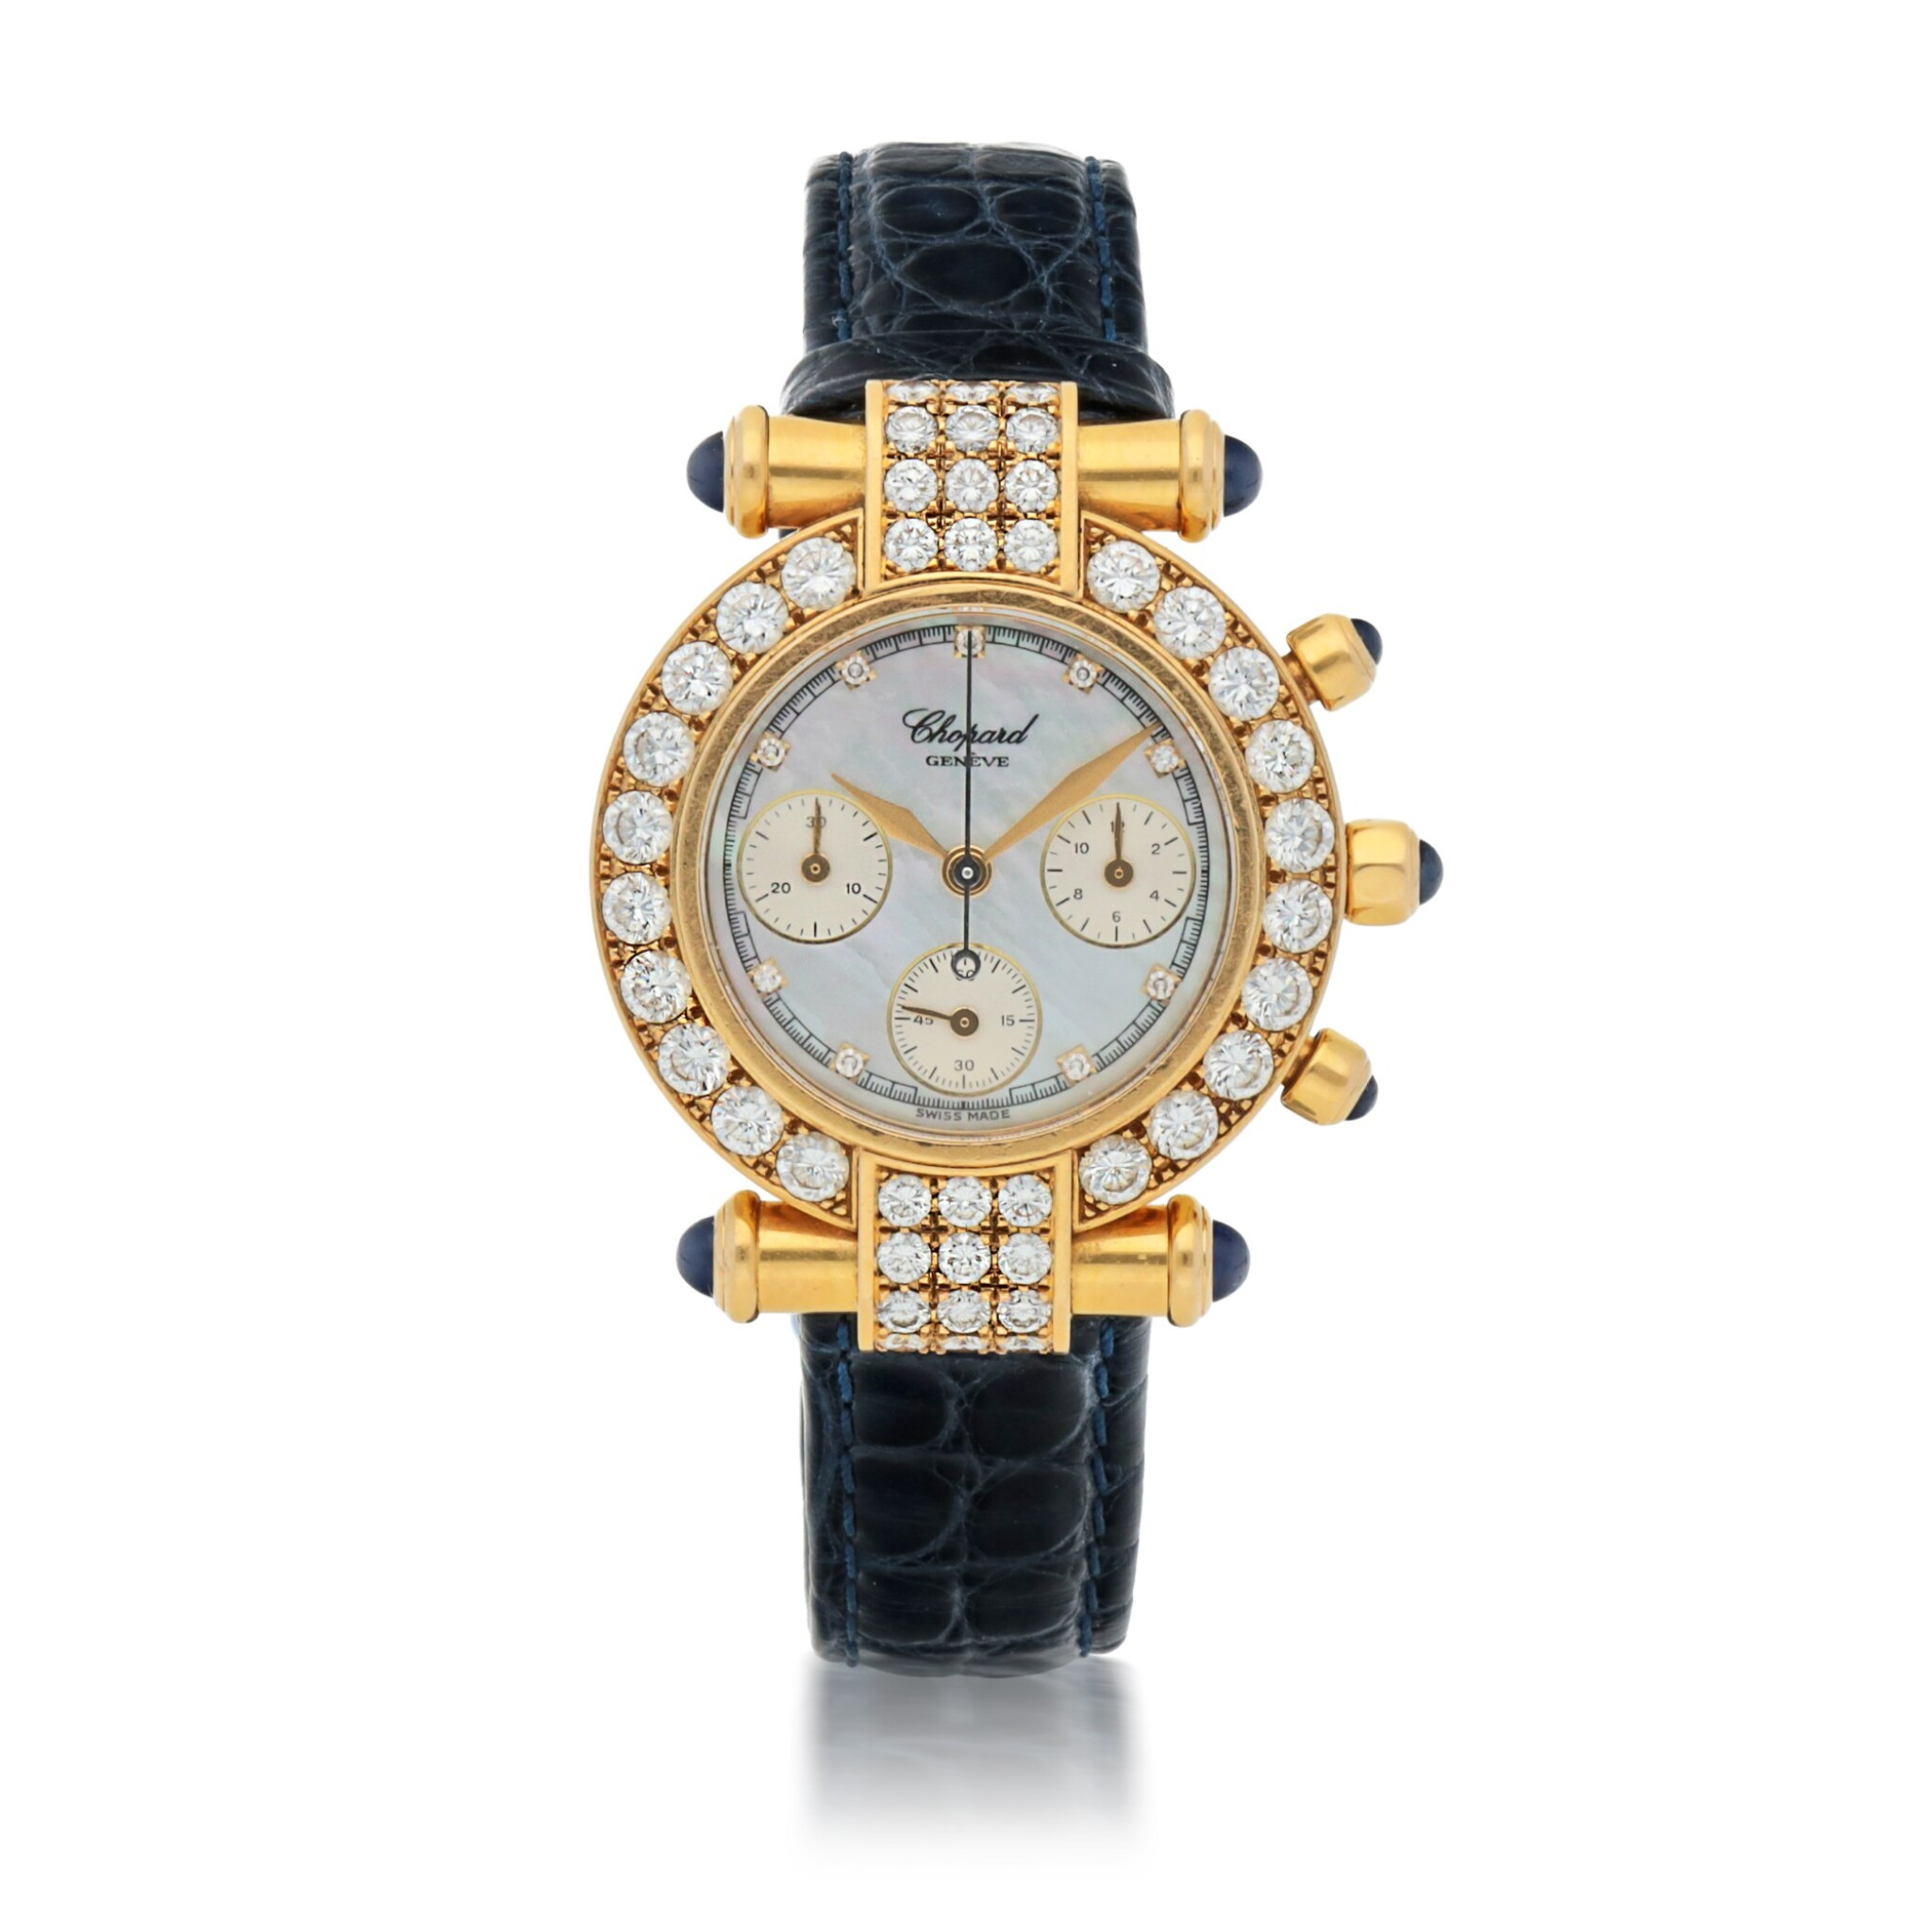 View full screen - View 1 of Lot 176. IMPERIALE, REF 4043 YELLOW GOLD AND DIAMOND-SET CHRONOGRAPH WRISTWATCH WITH MOTHER-OF-PEARL DIAL CIRCA 1996.